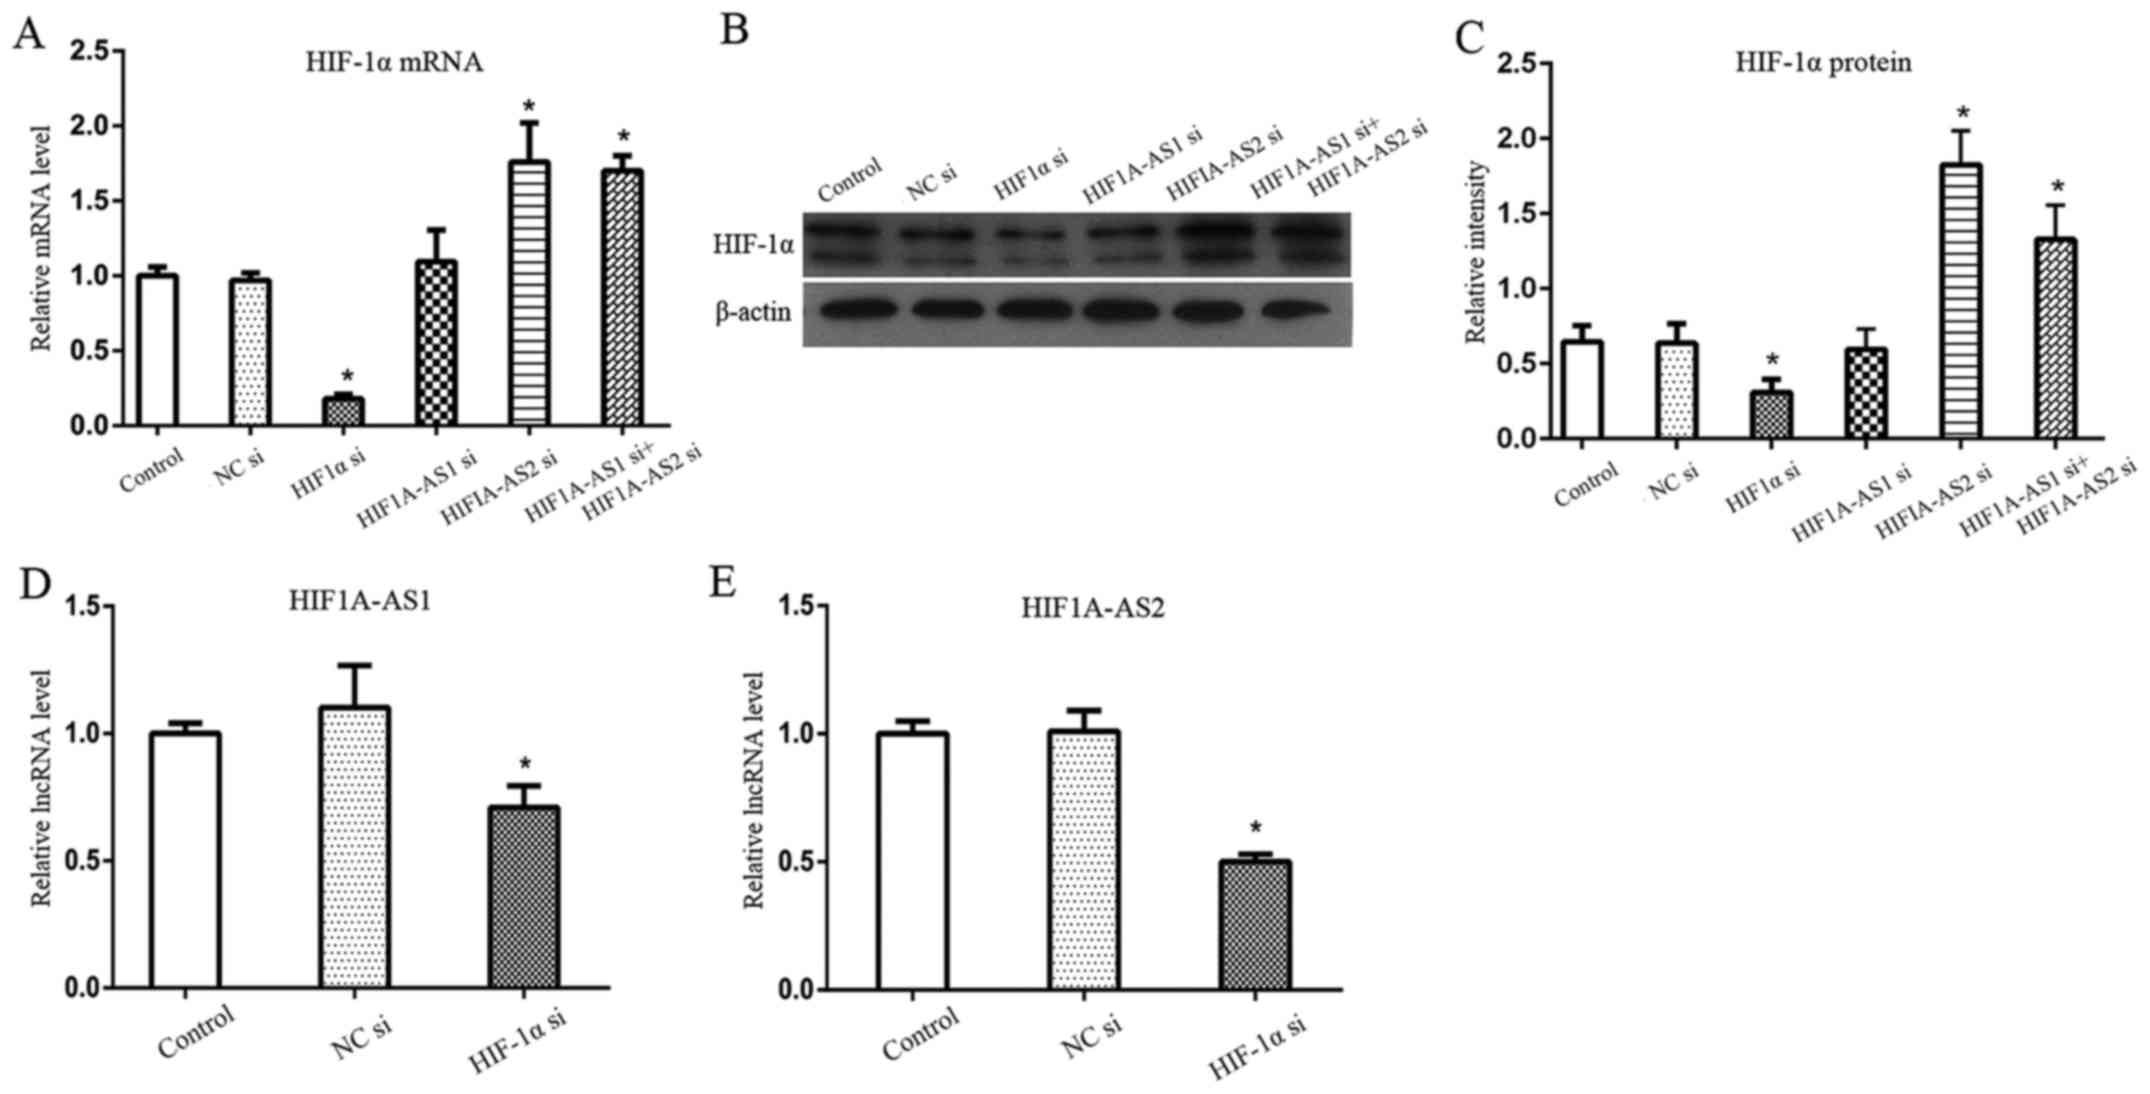 Comparison Of Hif1aas1 And Hif1aas2 In Regulating Hif1 The Test Loop For Circuit Continuity At Ends Twolong Figure 4 Effects Silencing Hif1a As1 As2 Hif 1 On Expression Each Other Hypoxia A Mrna Showed No Significant